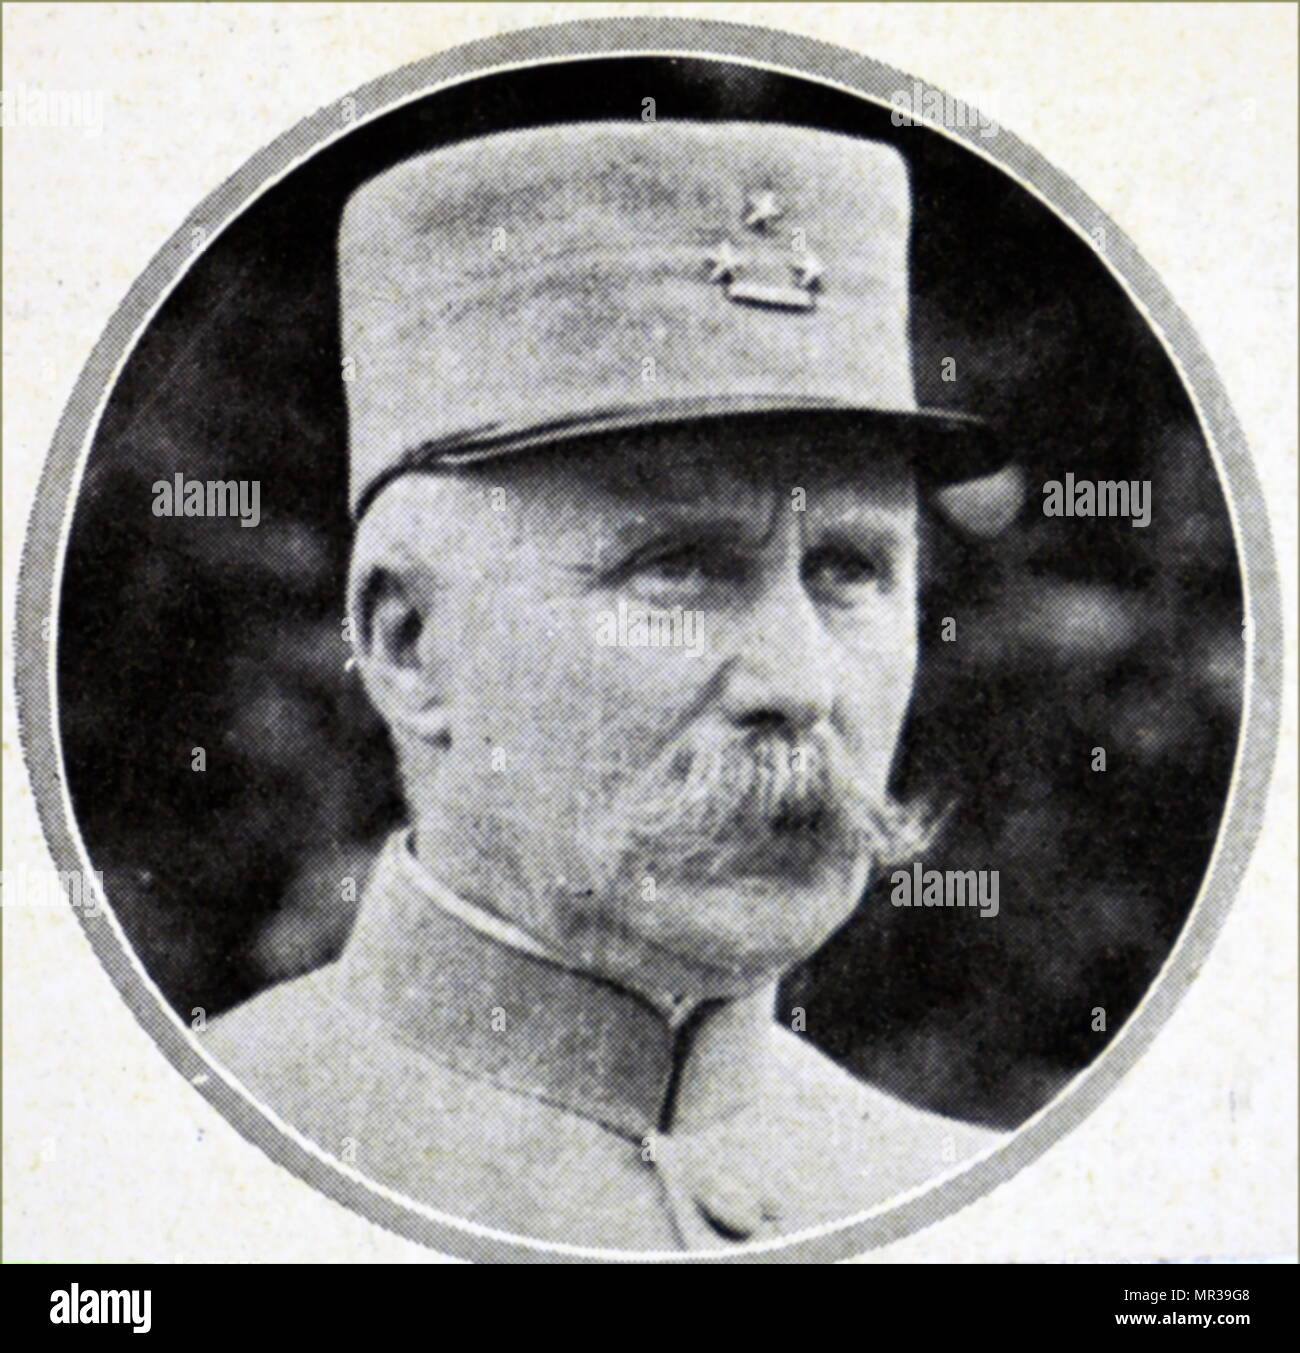 Photographic portrait of Philippe Petain (1856-1951) a French general officer, Marshal of France and French Ambassador to Spain. Dated 20th century - Stock Image